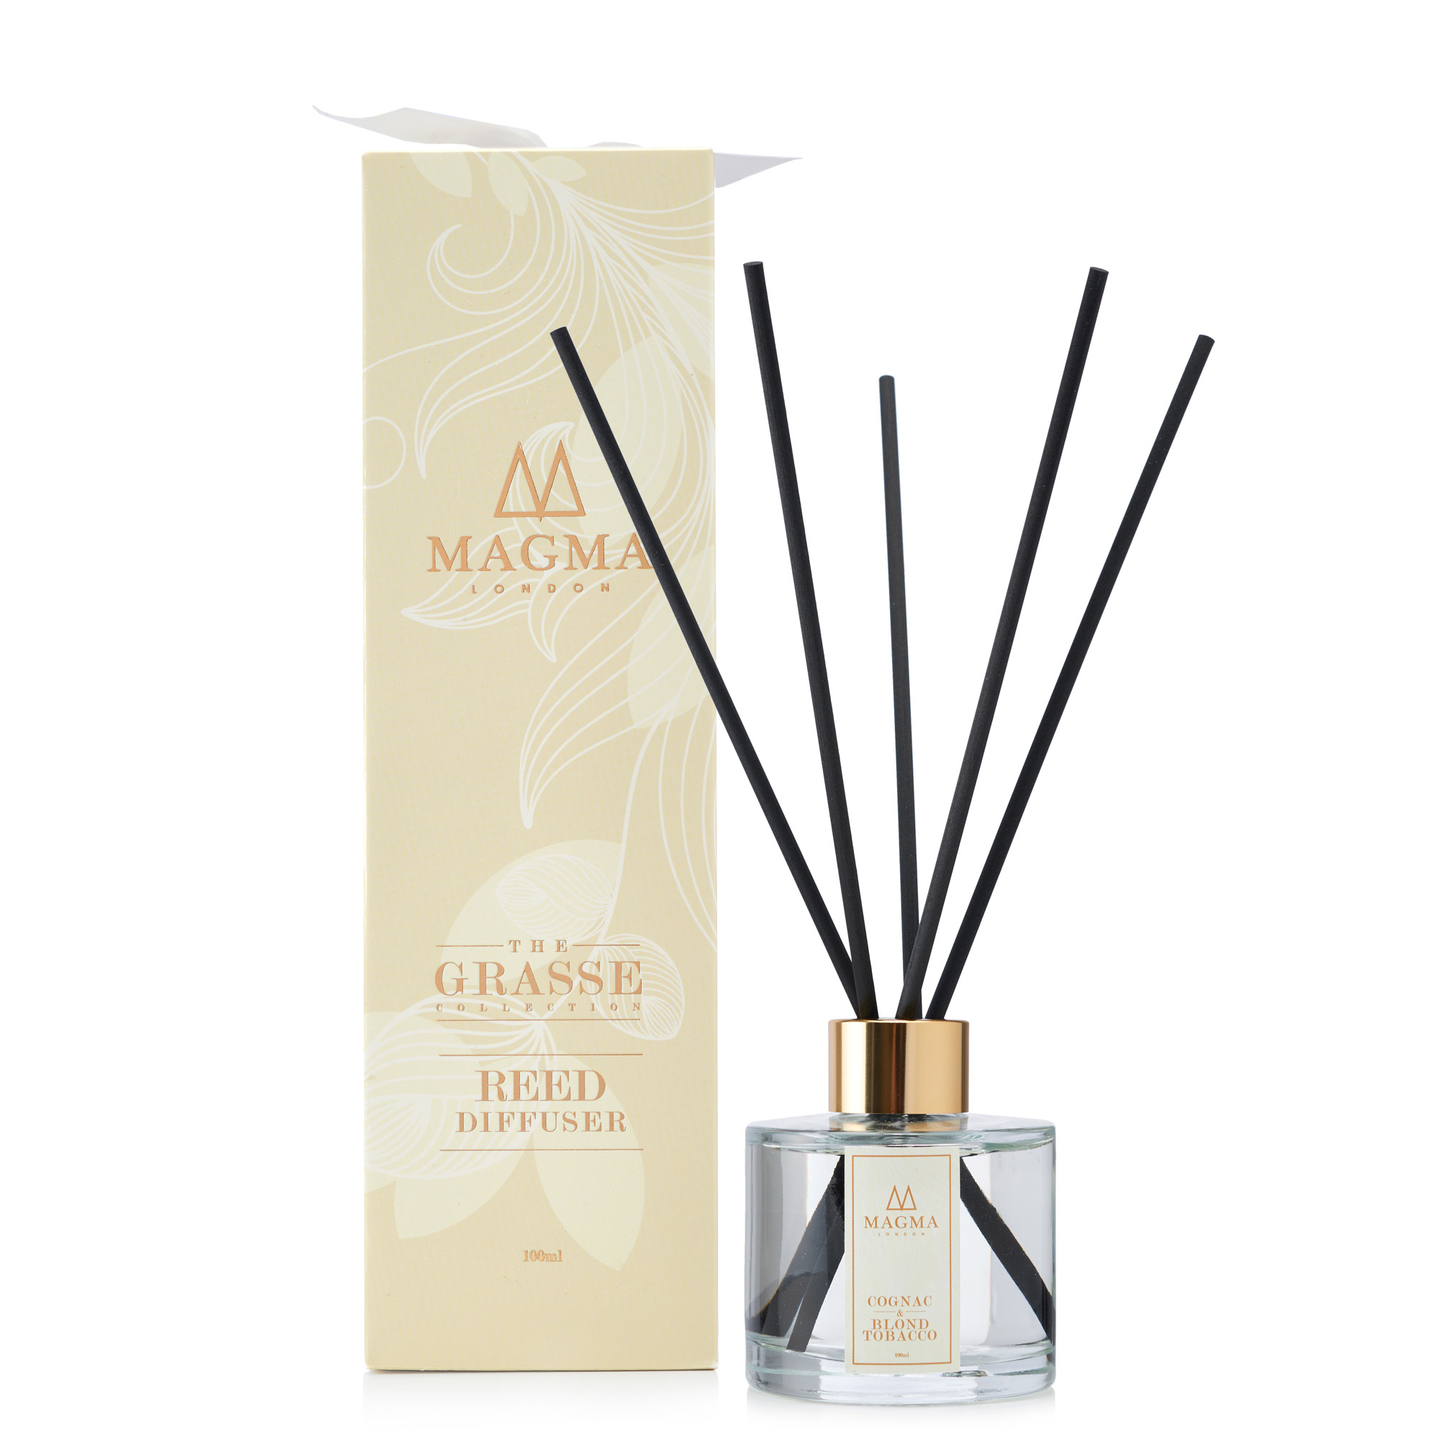 Cognac & Blond Tobacco- Diffuser